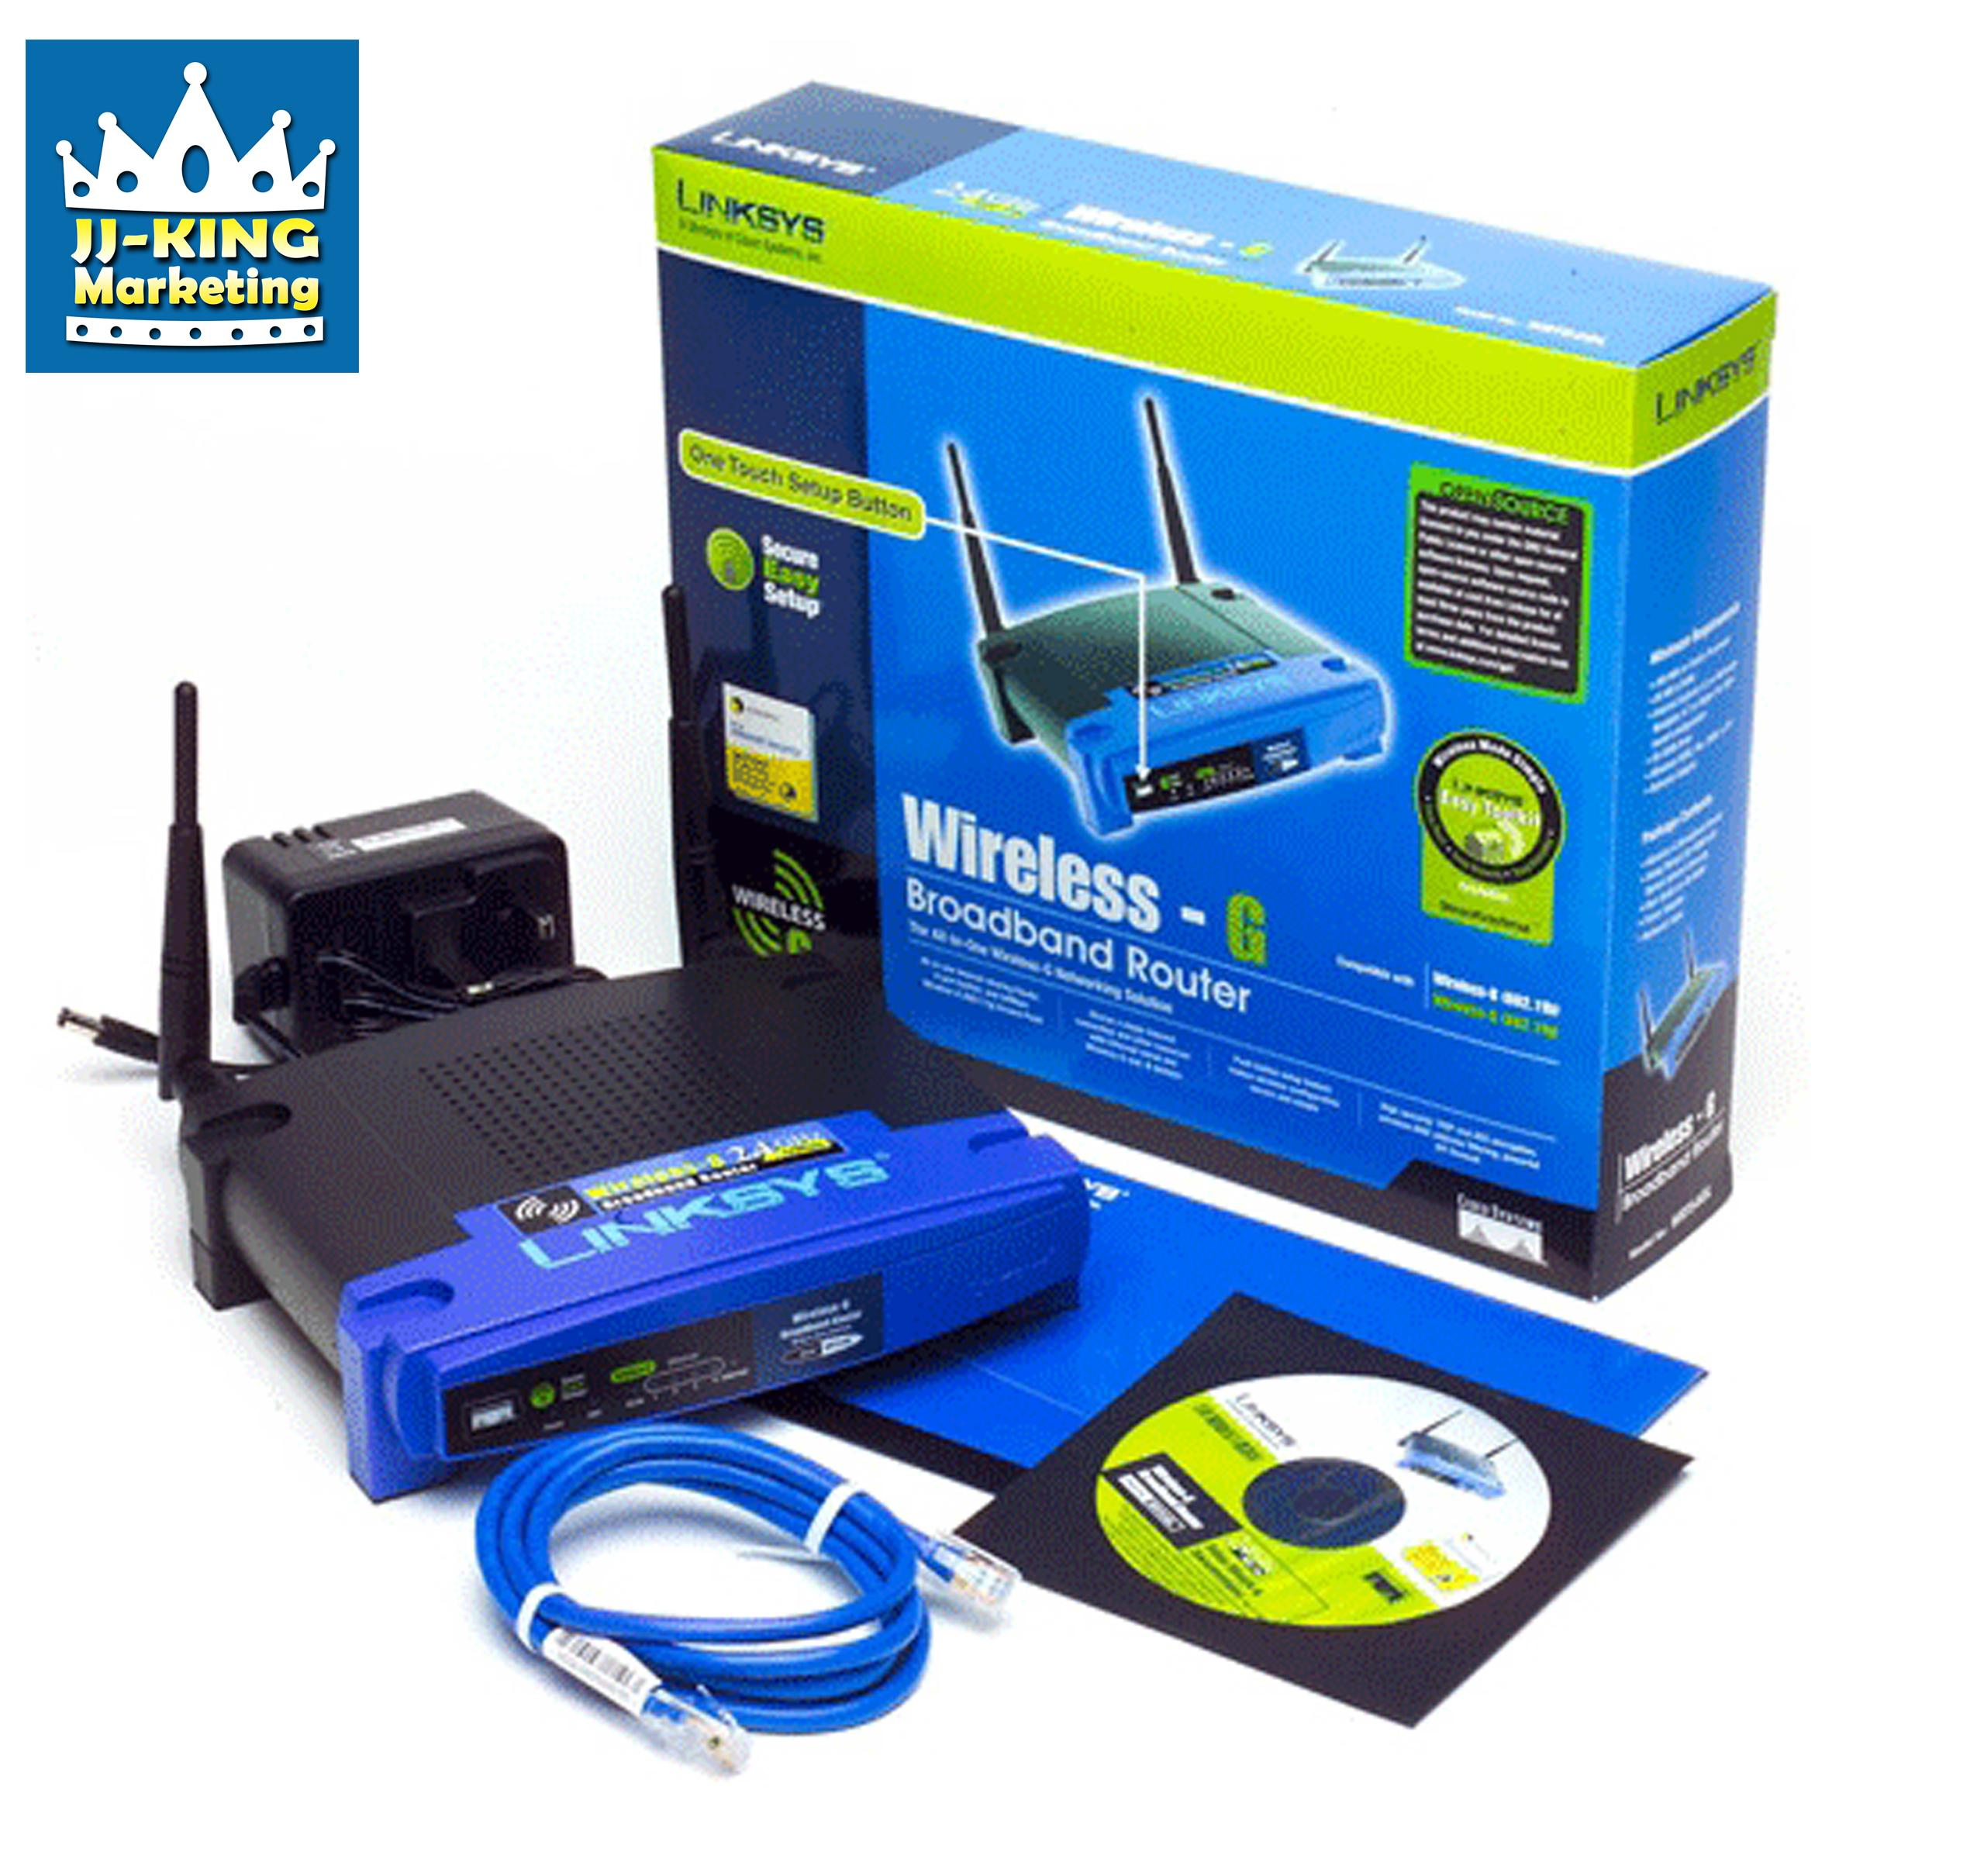 Linksys Philippines: Linksys price list - Internet Routers, Wifi